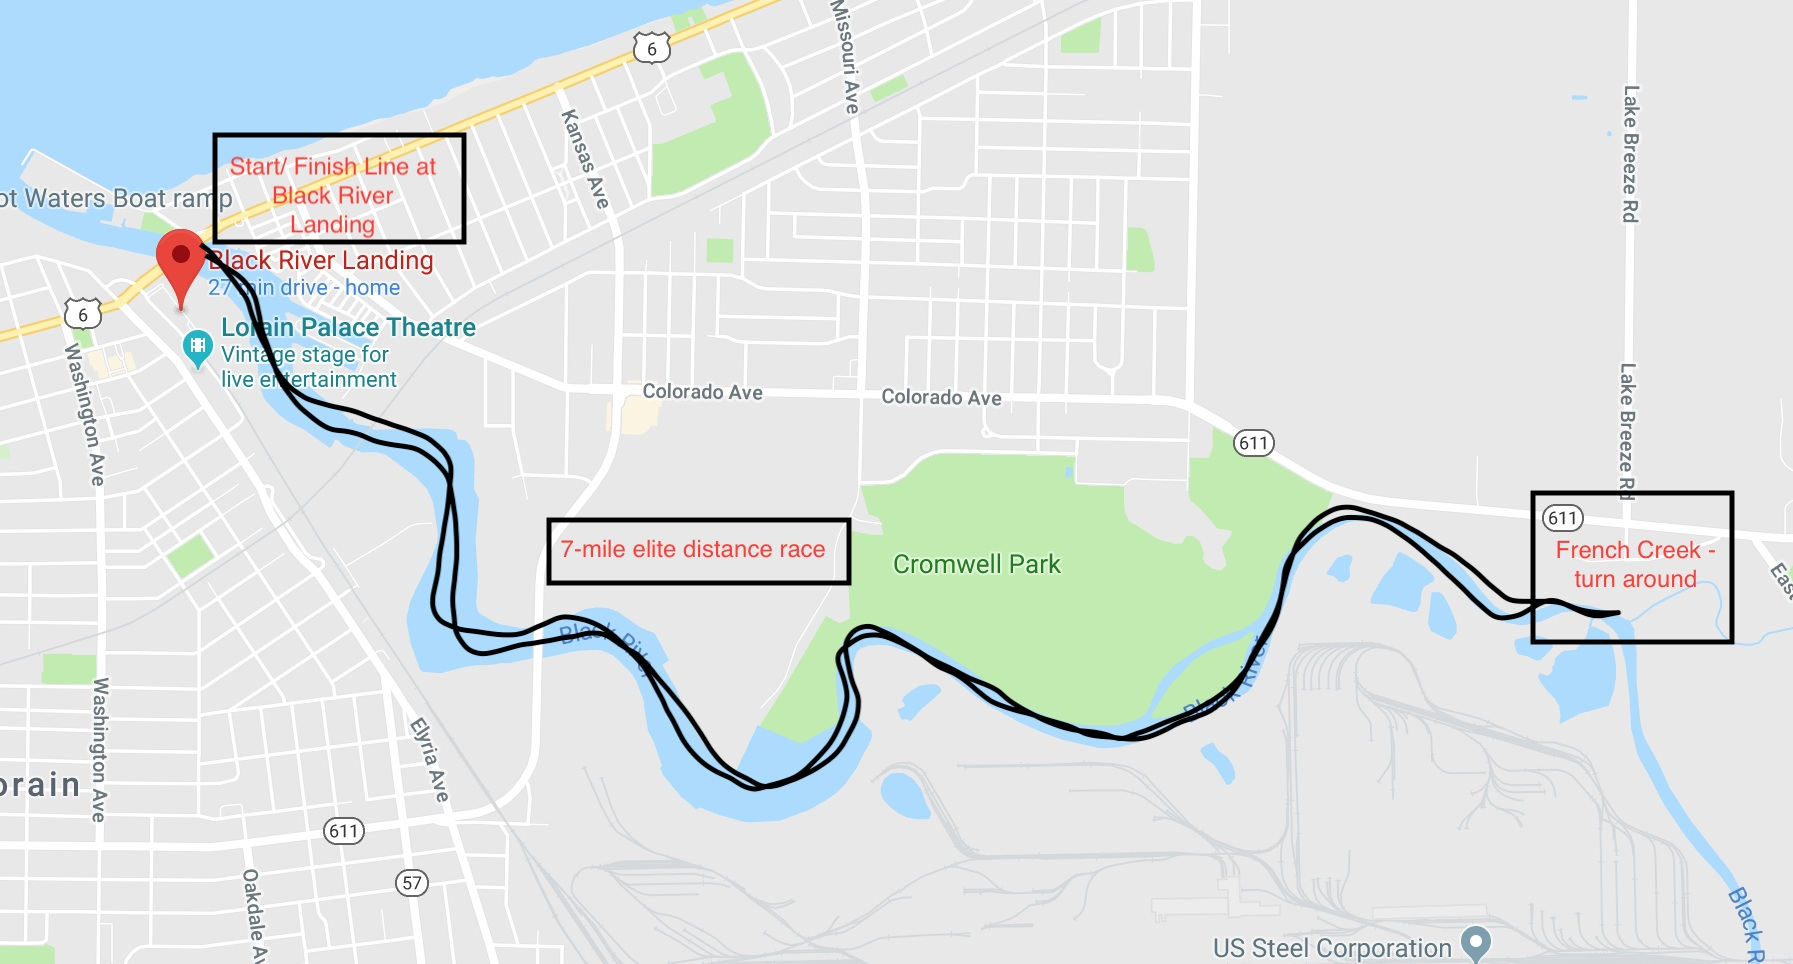 7-mile, elite distance race from Black River Landing, upriver to the Frech Creek confluence, turn around, back downriver to finish at Black River Landing.